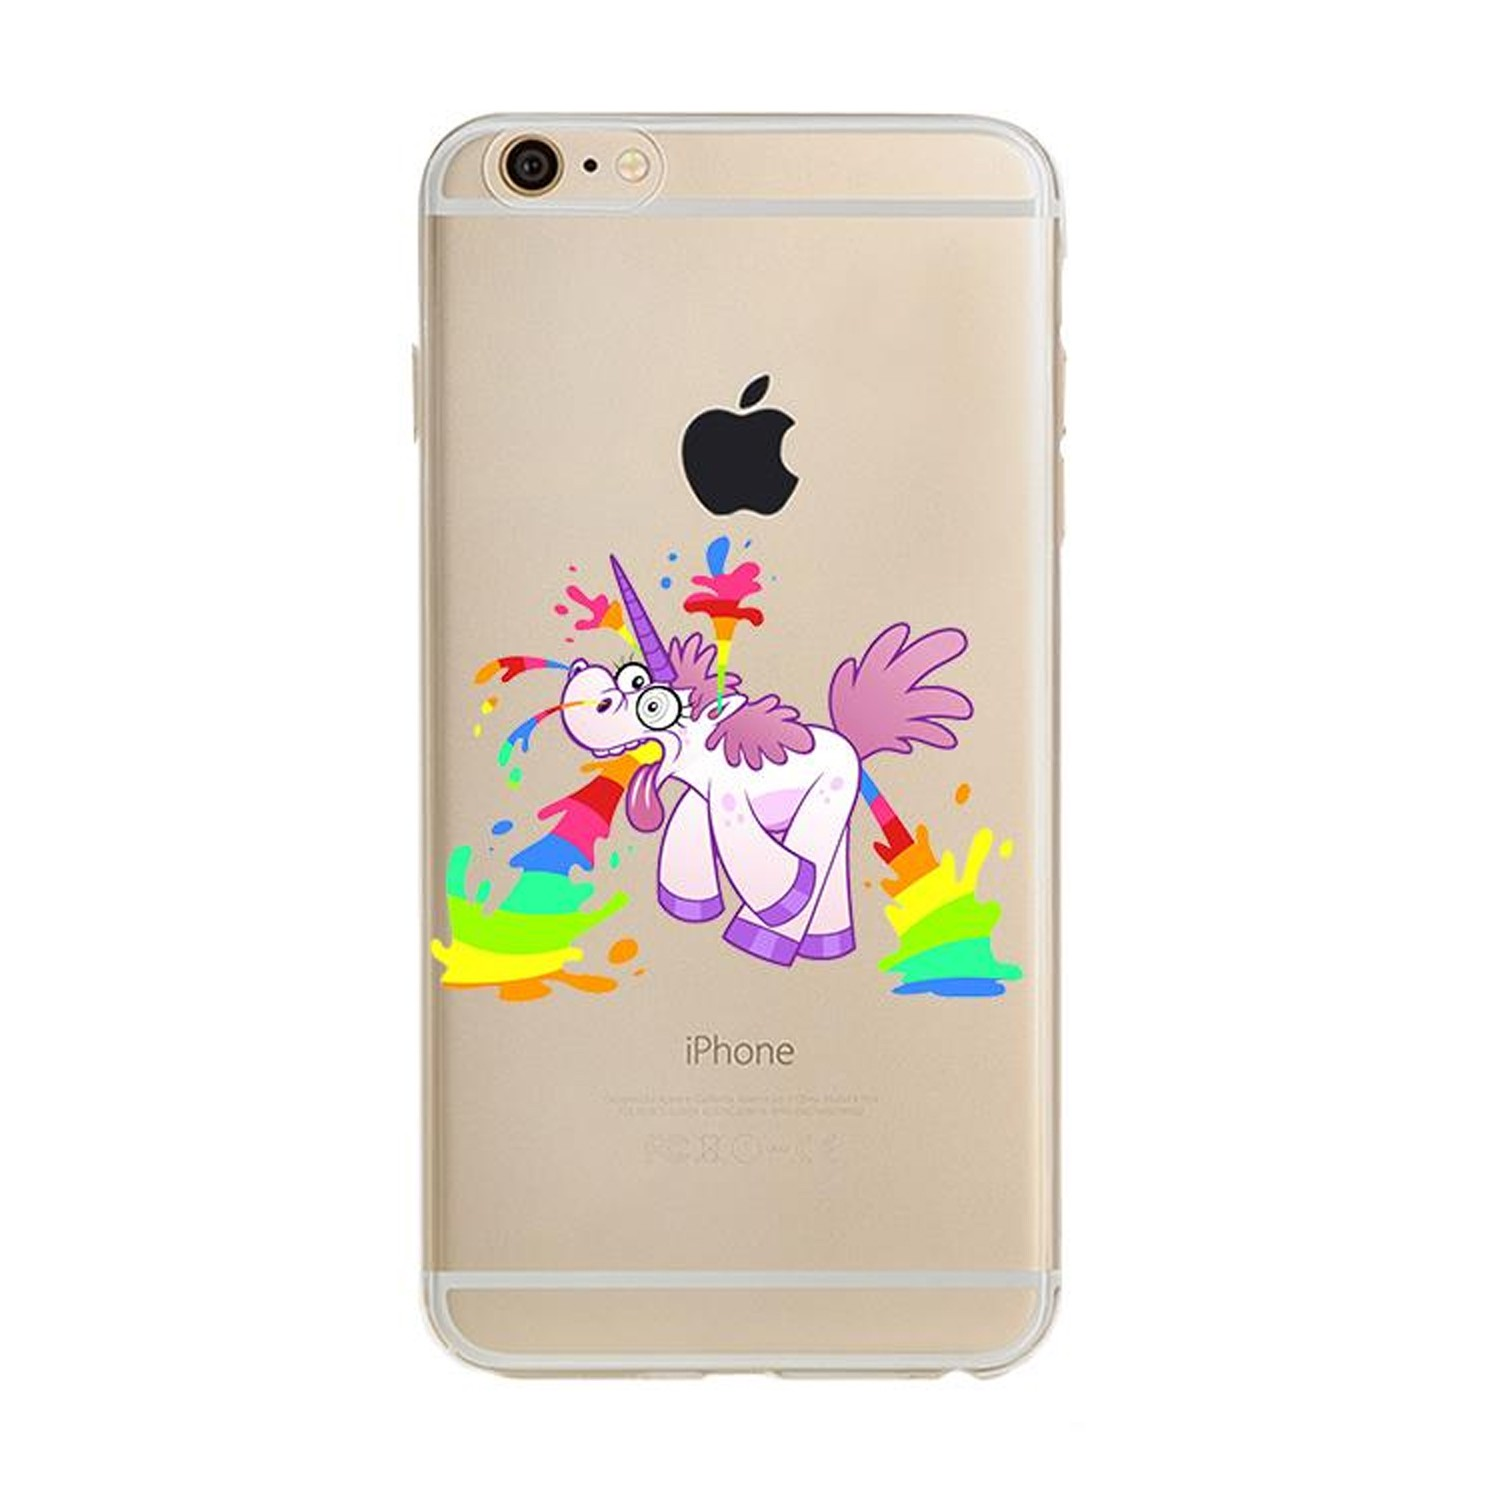 Kritzel Case für iPhone 6 / 6s - Unicorn #5